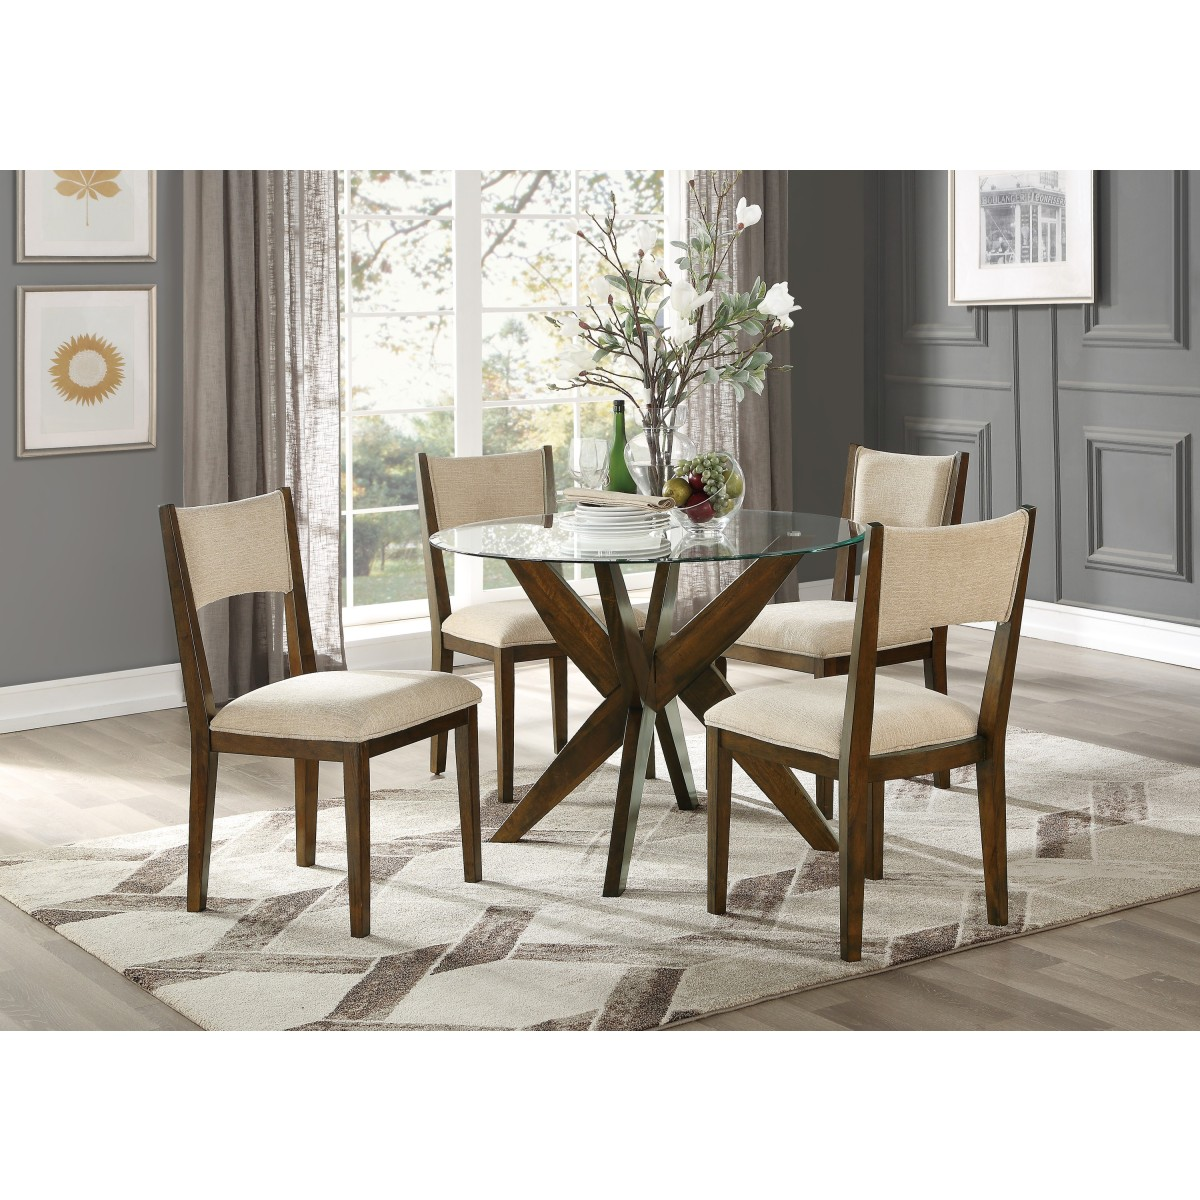 549142 round glass dining table tempered